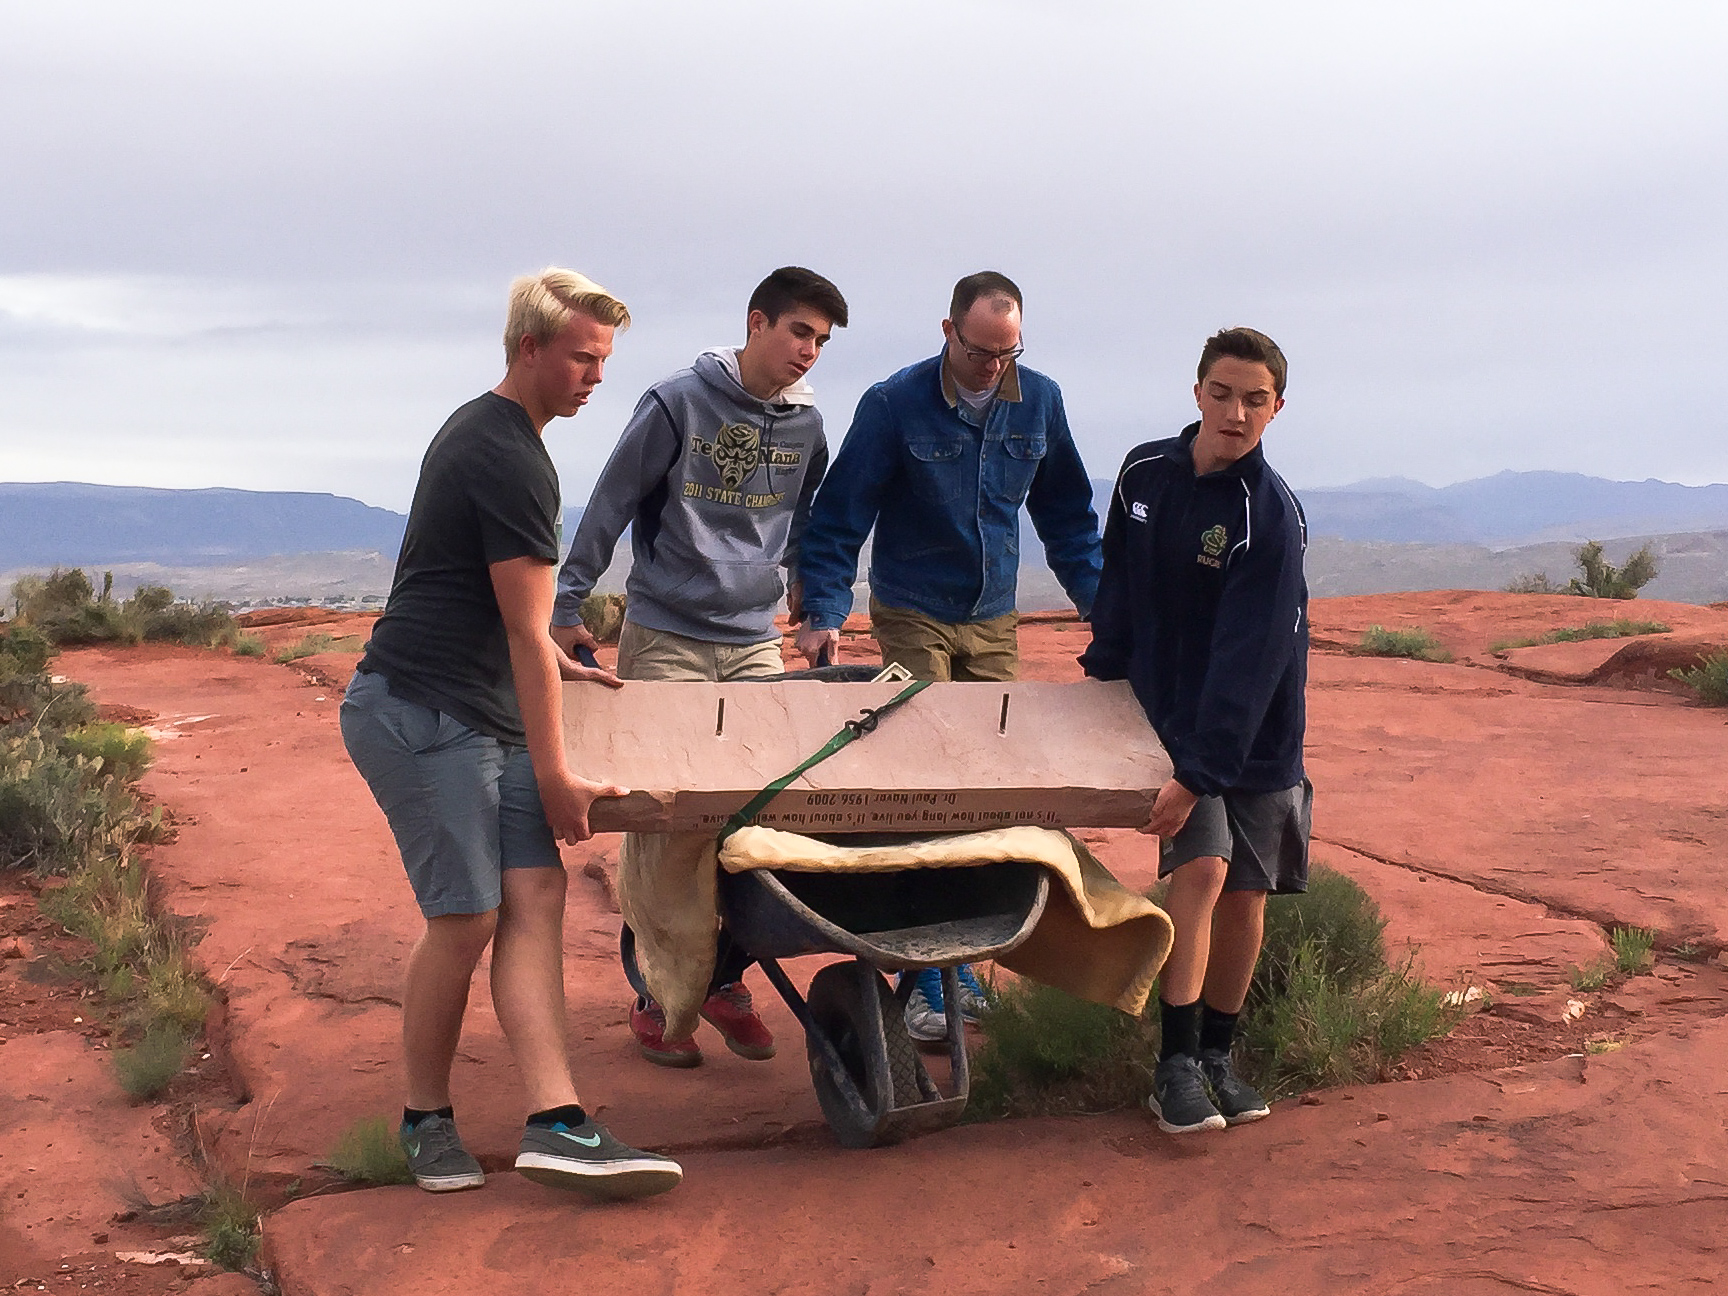 L-R: Jacob Brostrom, Andy Day, James Day, Taylor Hill, of Boy Scout Troop 1827, transporting bench in memorial to Dr. Paul Navar, who died of a heart attack on Paradise Rim in February, 2009. St. George, Utah, May 22, 2015 | Photo courtesy of Julie Day, St. George News